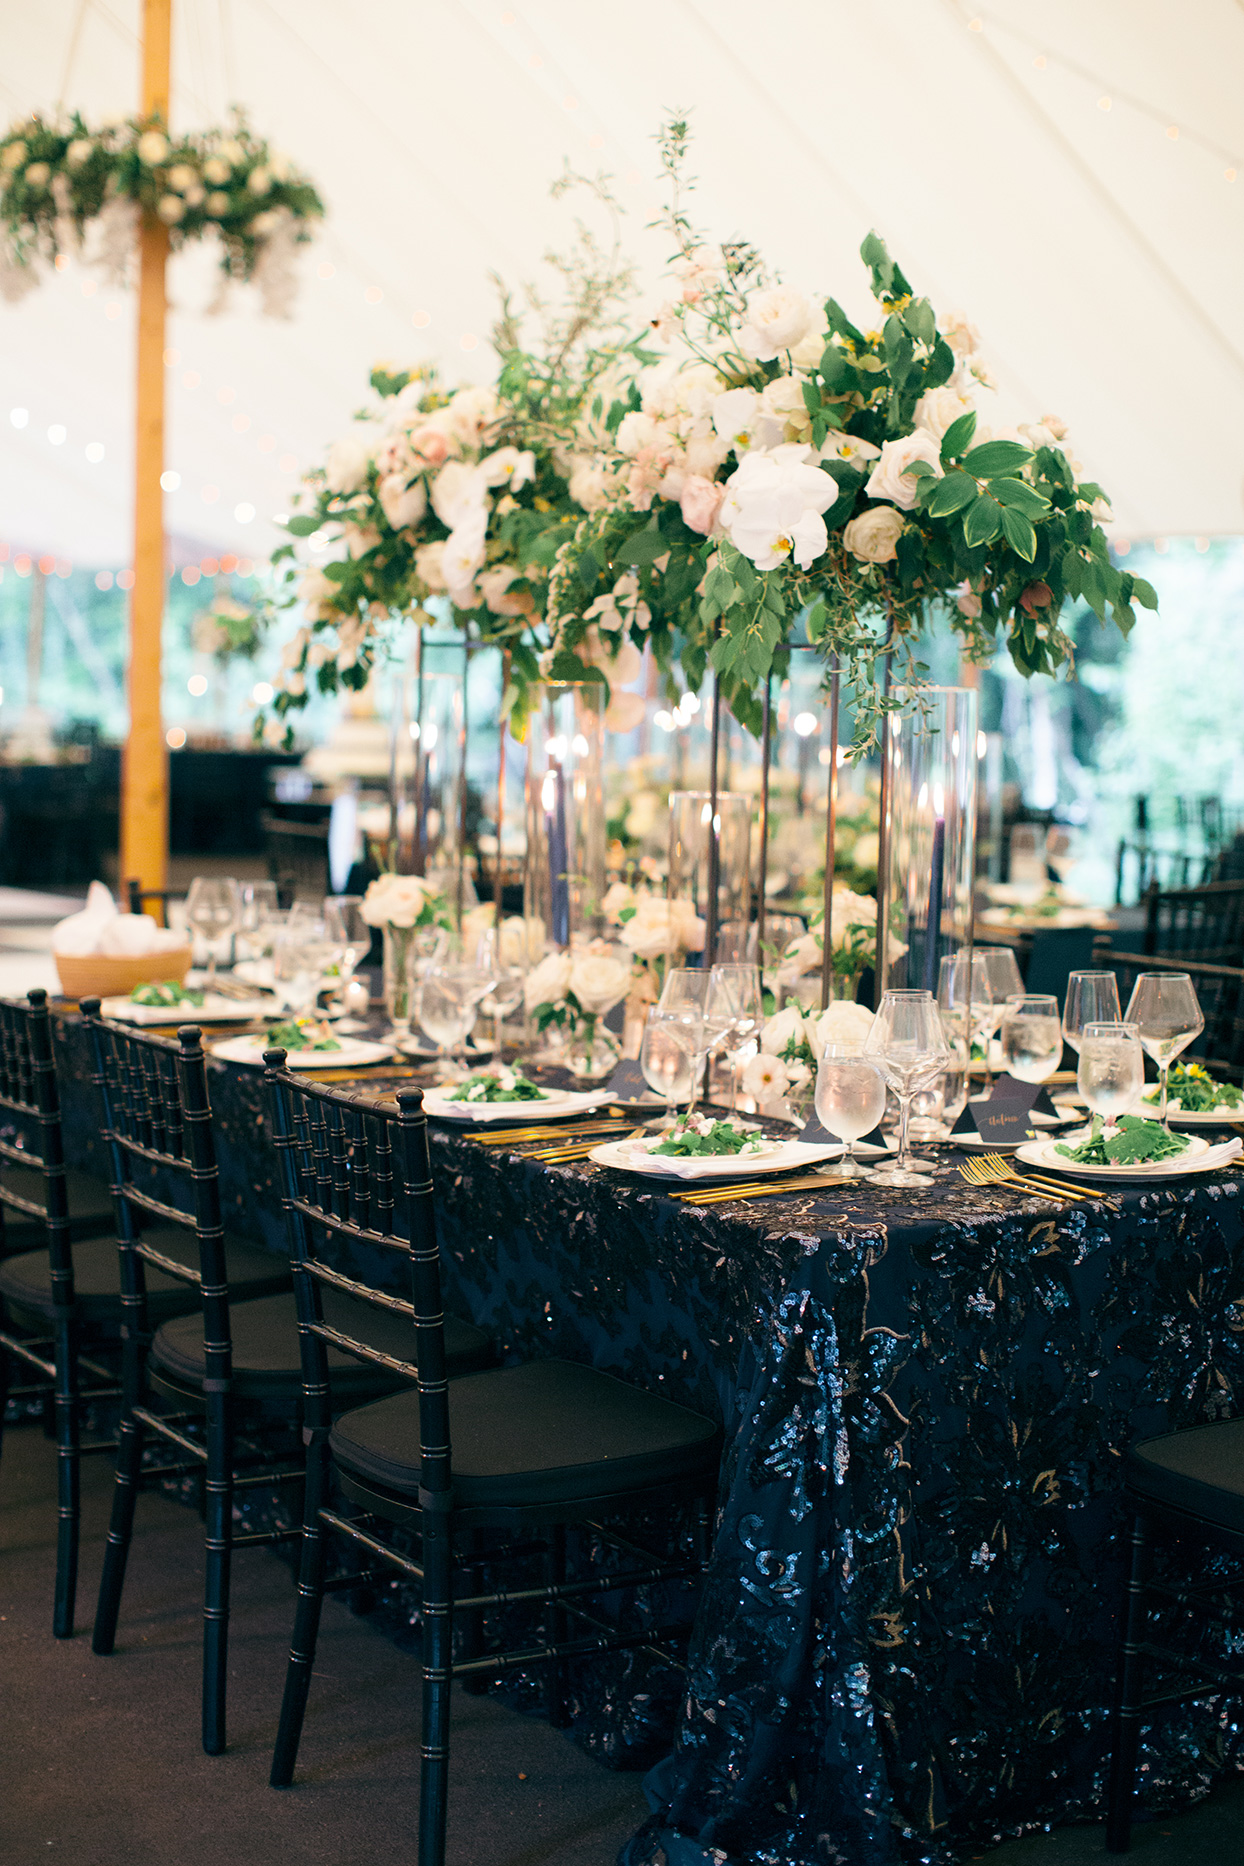 reception tables with shimmering blue tablecloths and tall centerpieces